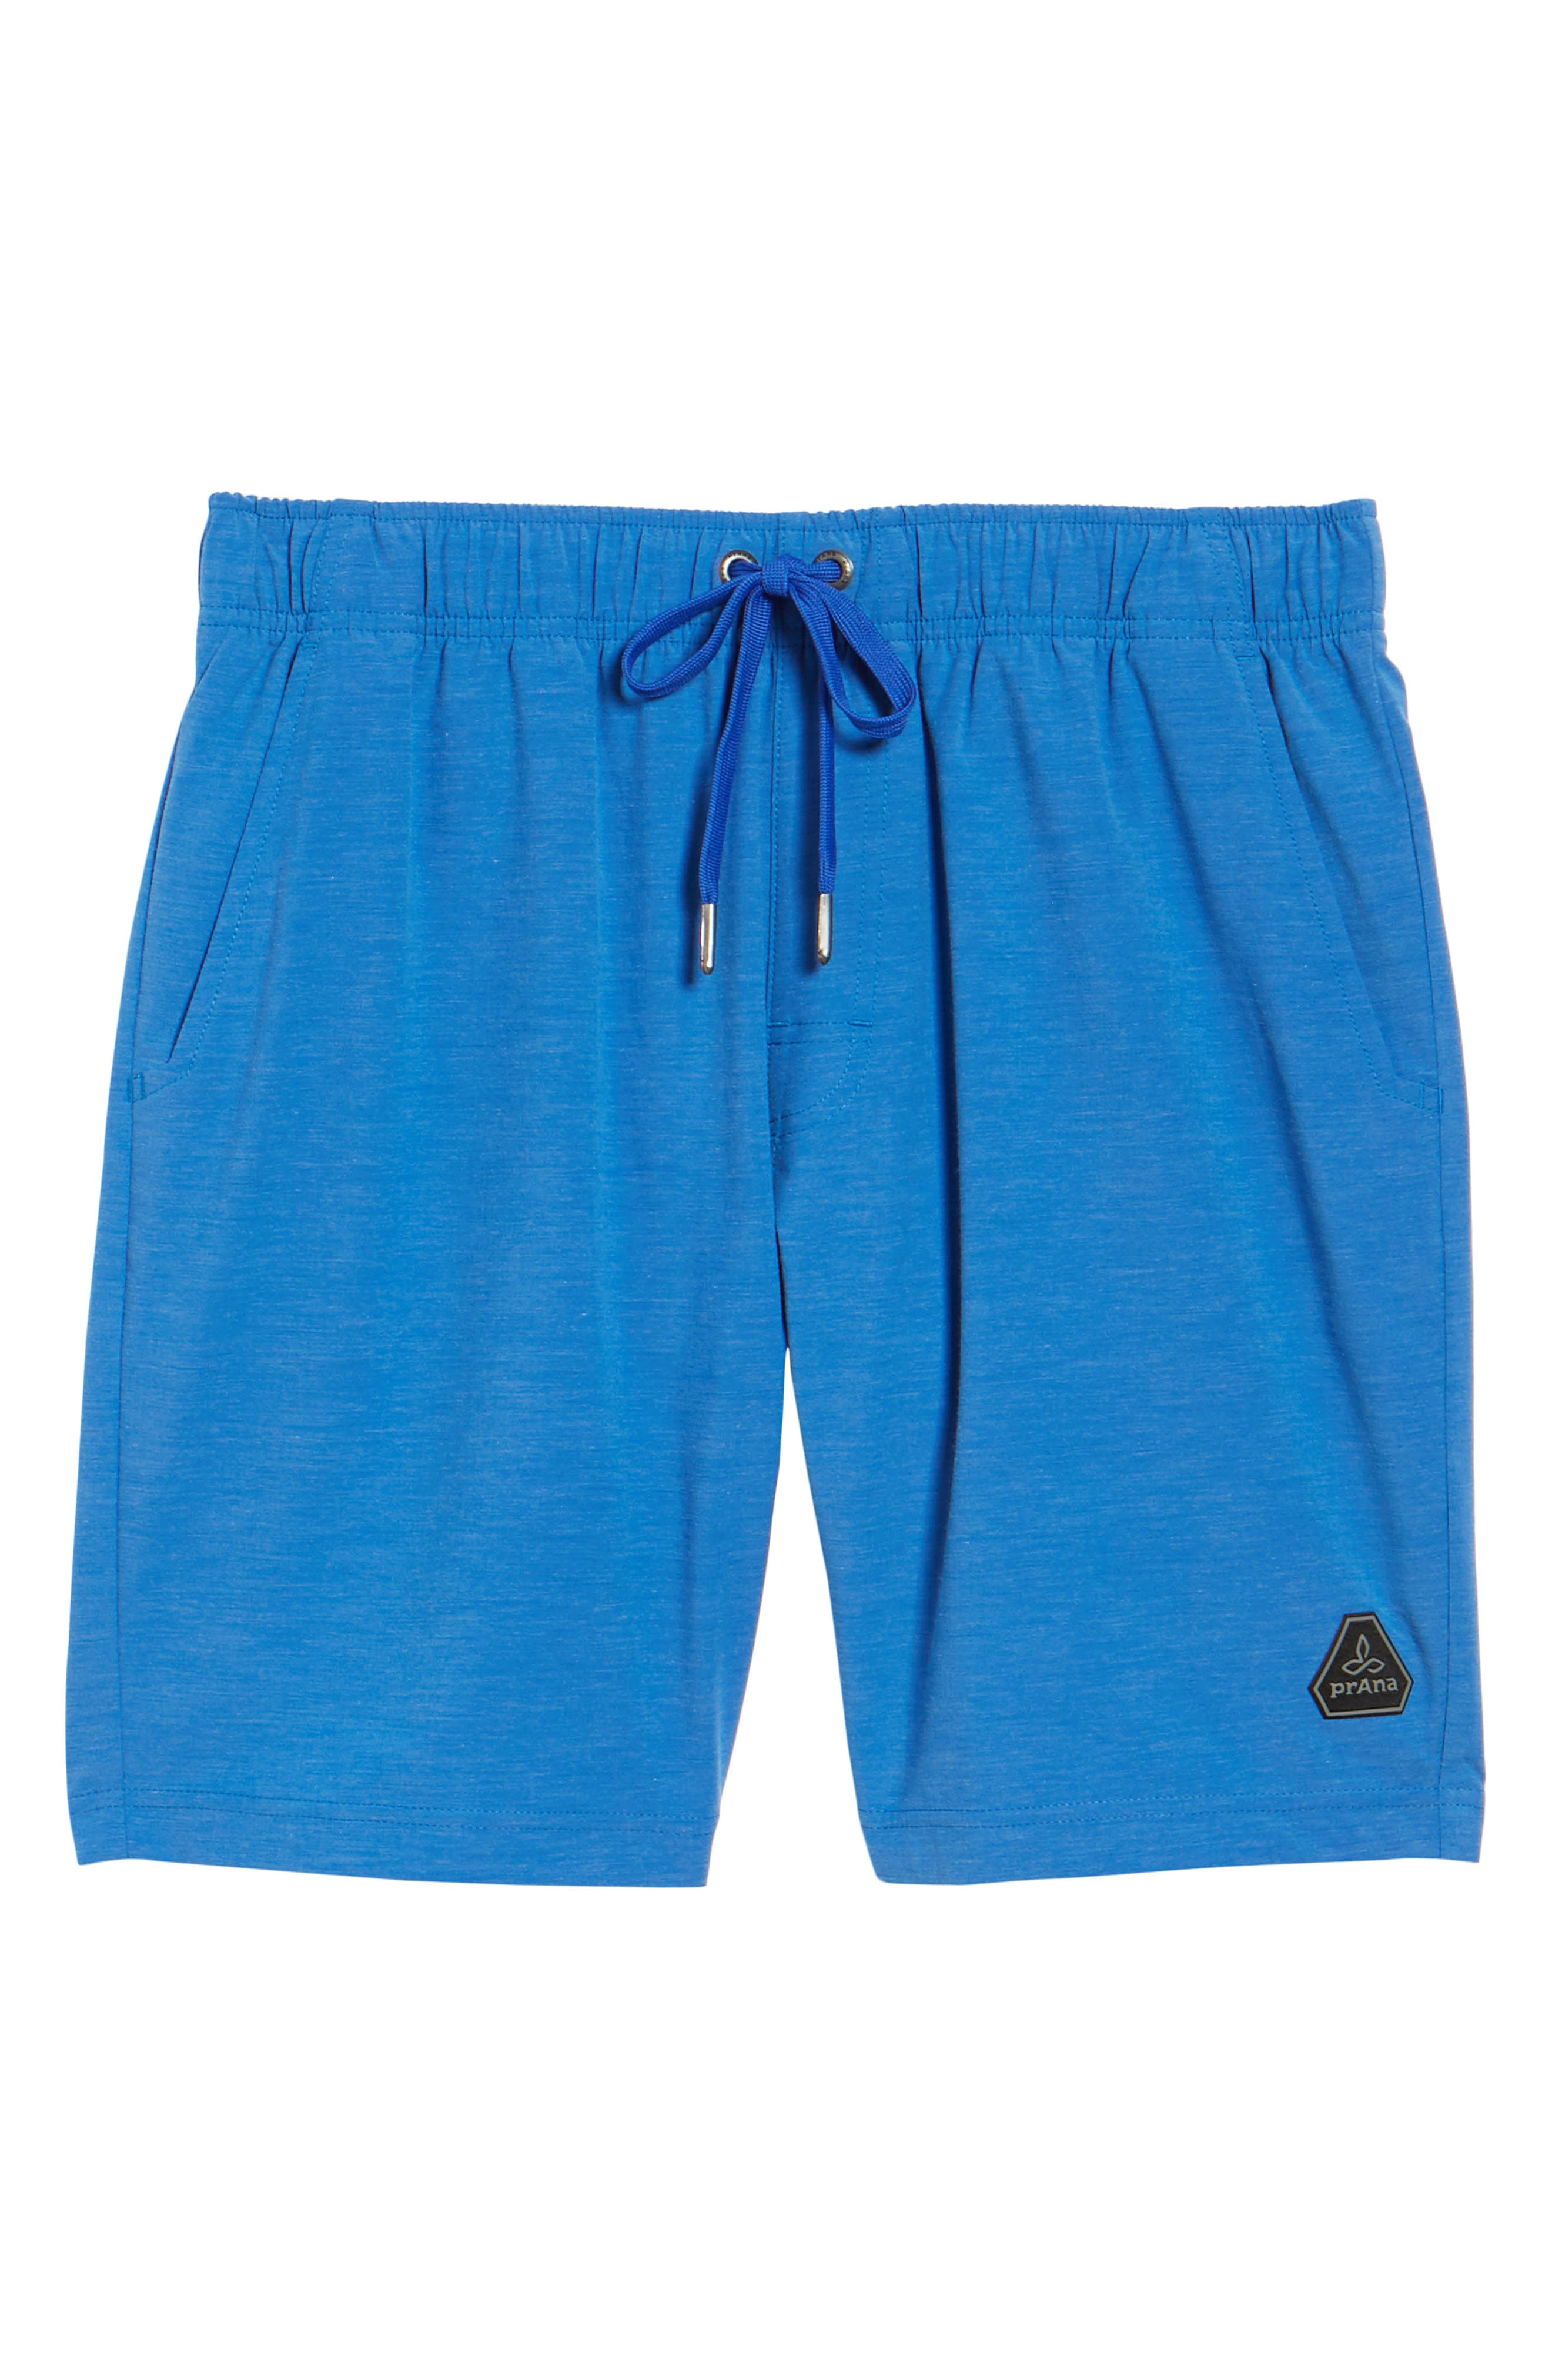 Metric Board Shorts,                         Main,                         color, Island Blue